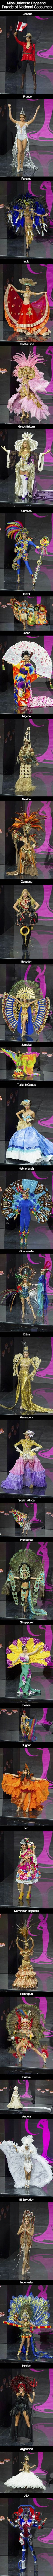 Miss Universe Pageant Parade Of National Costumes – 34 Pics